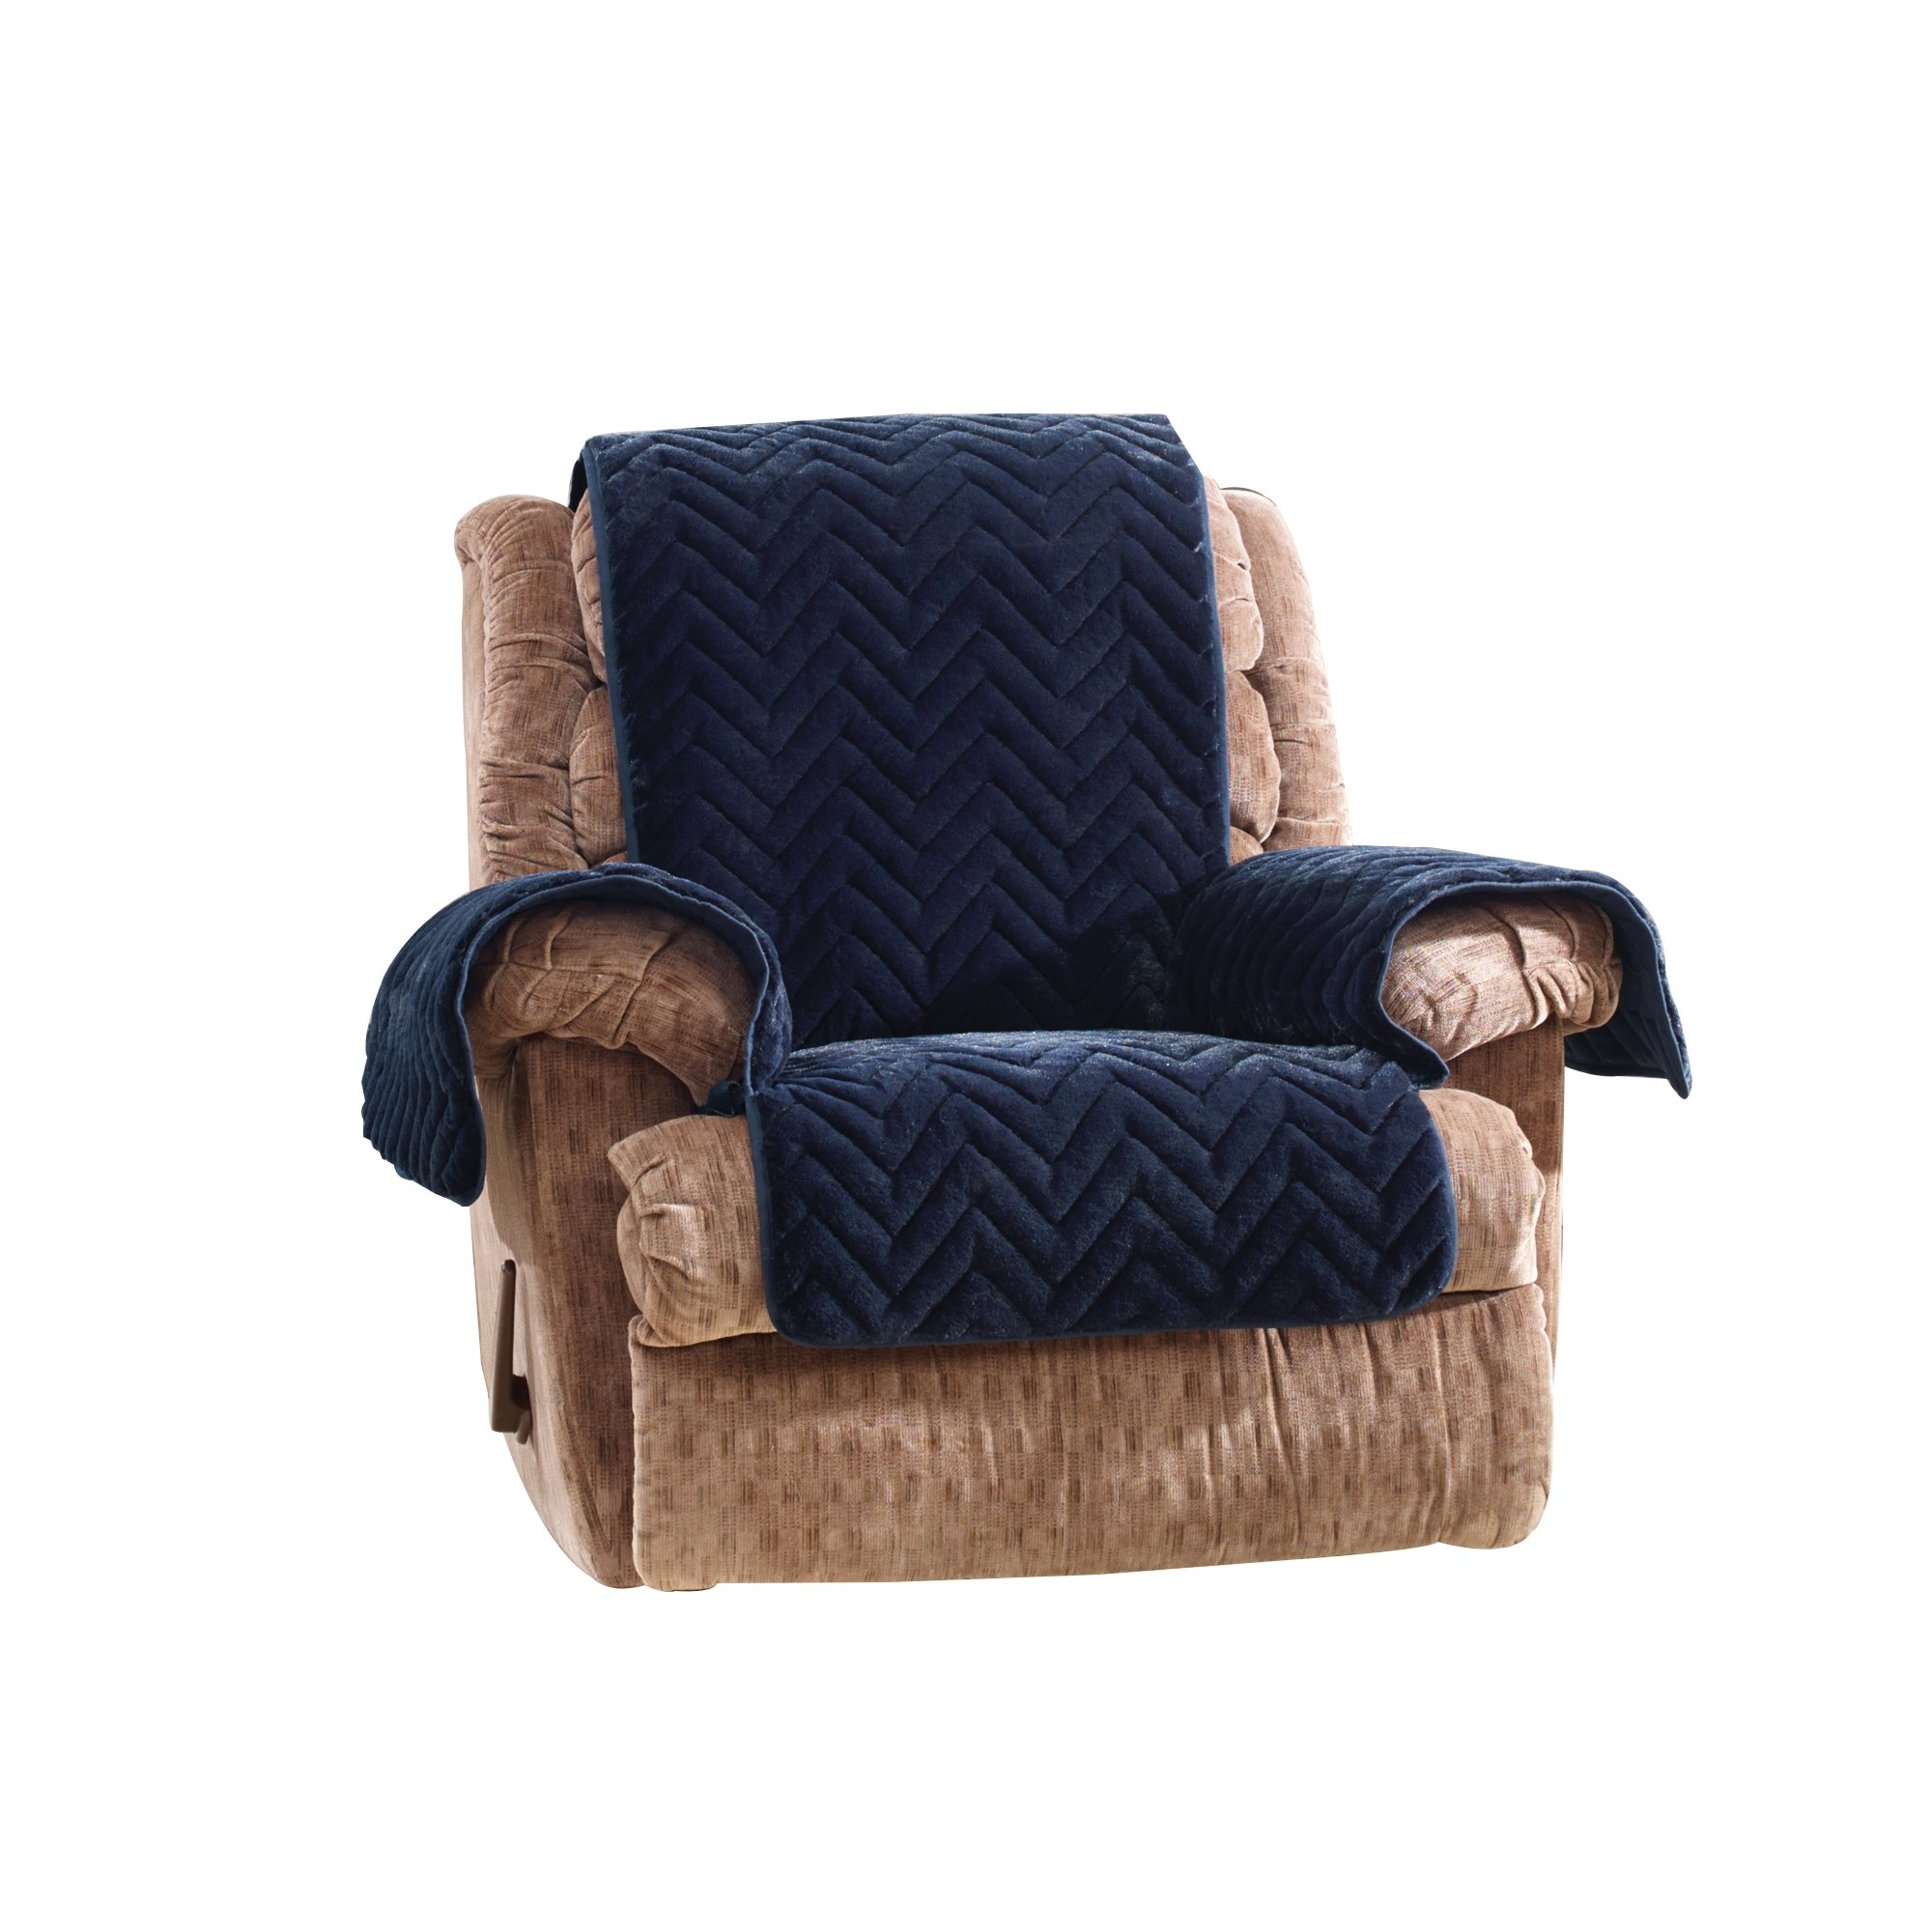 Sure Fit Quilted Faux Fur Furniture Cover, Recliner, Navy